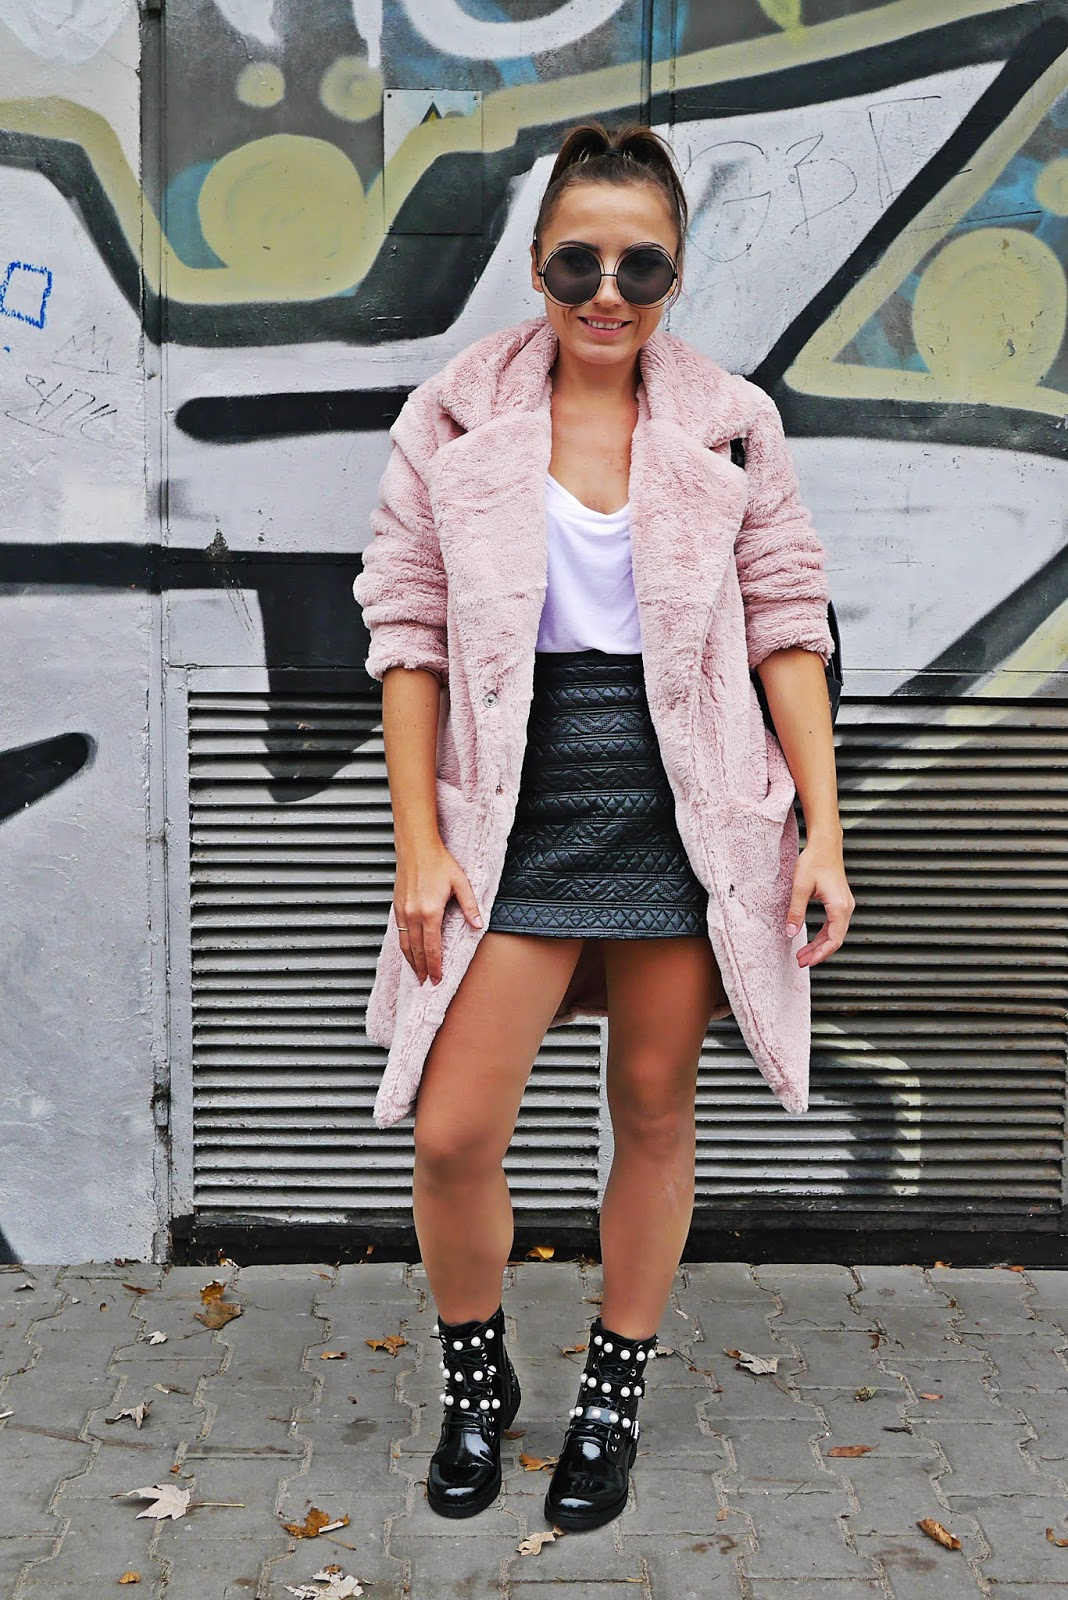 7_biker_boots_pearl_pink_fur_leather_skirt_outfit_karyn_blog_MOdowy_041118